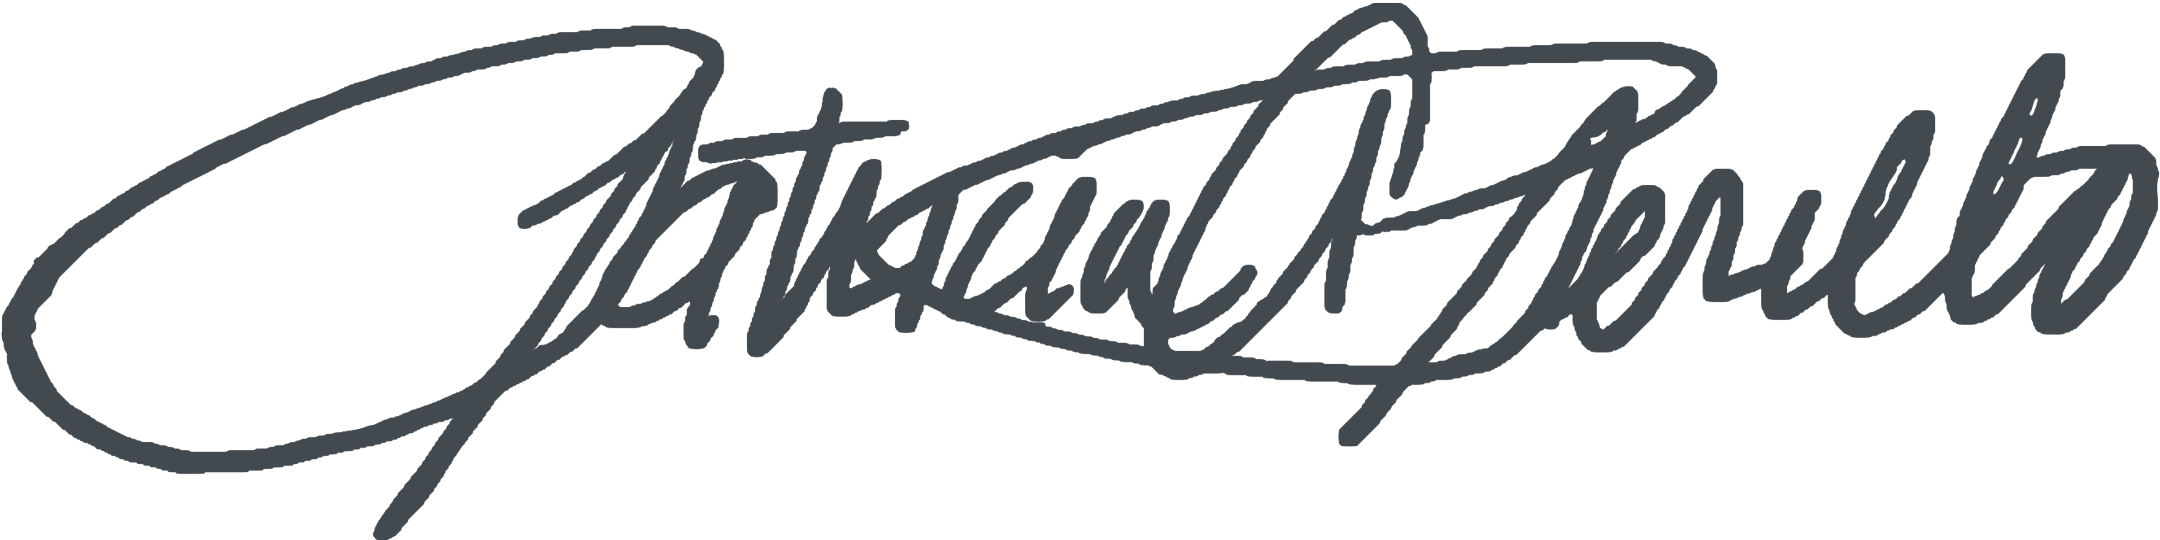 Patty Perillo Signature